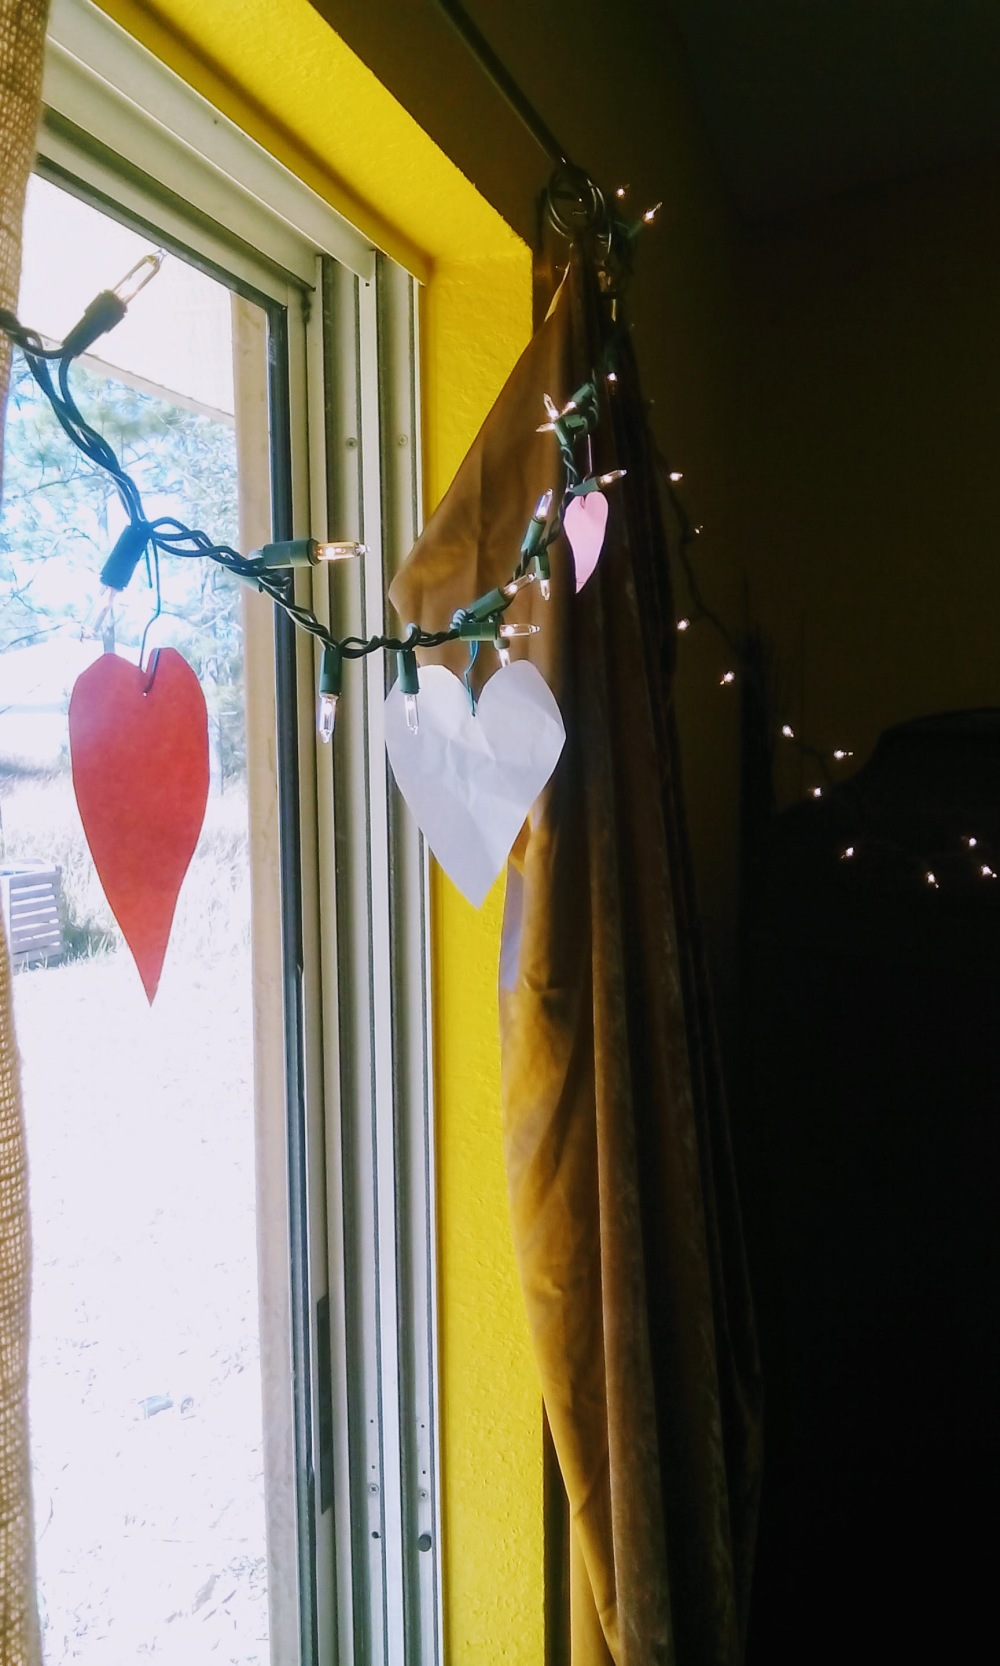 paper hearts with lights